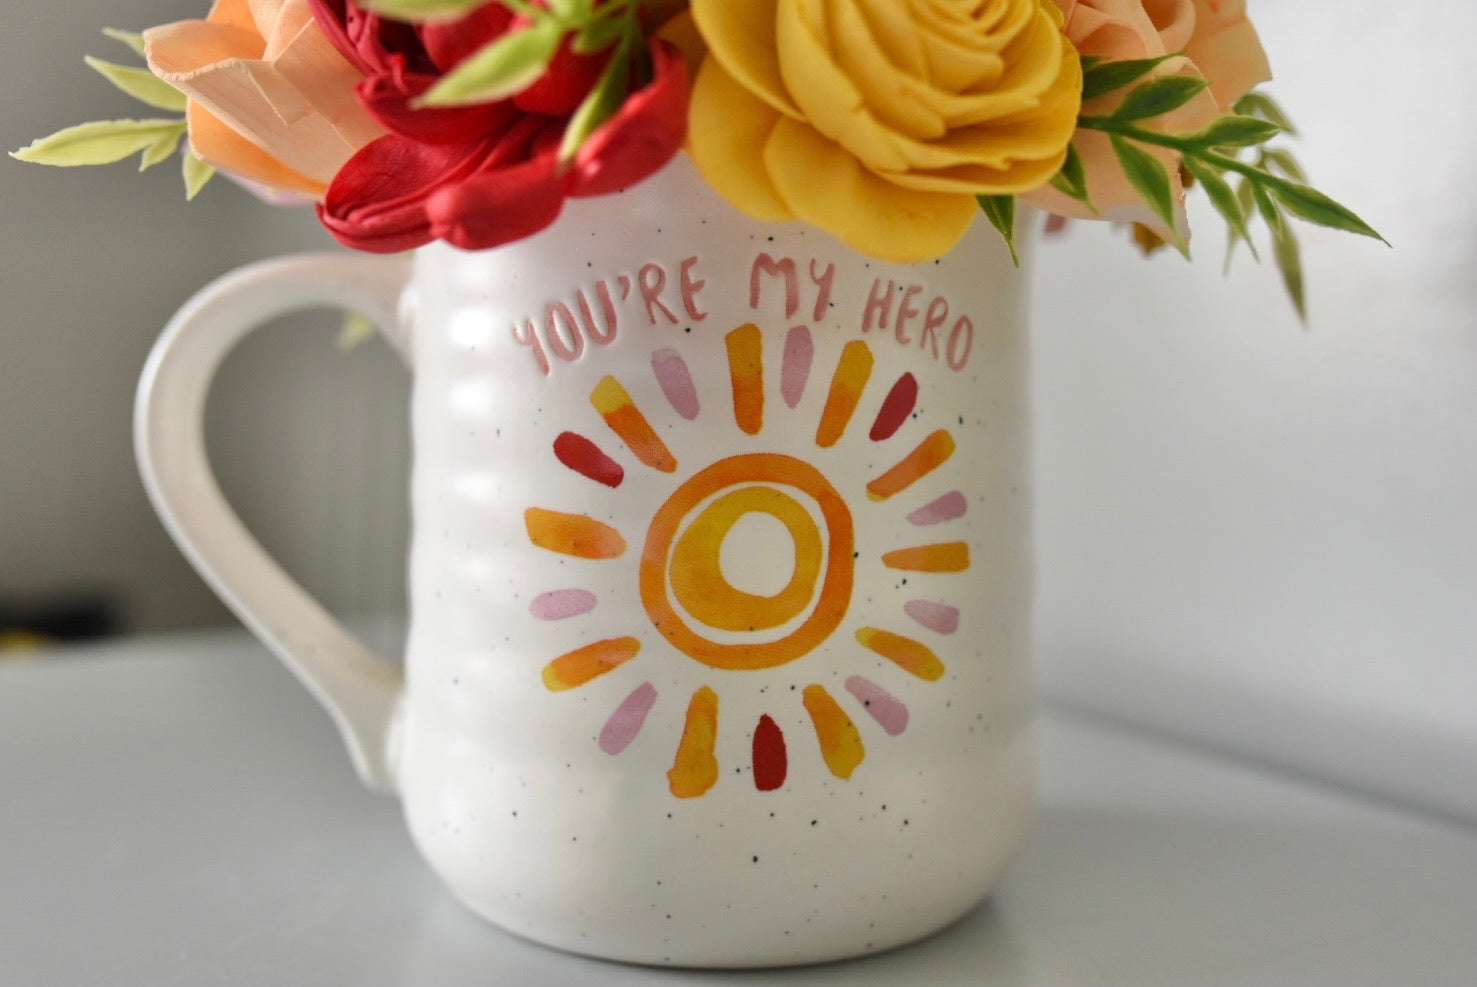 You're My Hero Mug